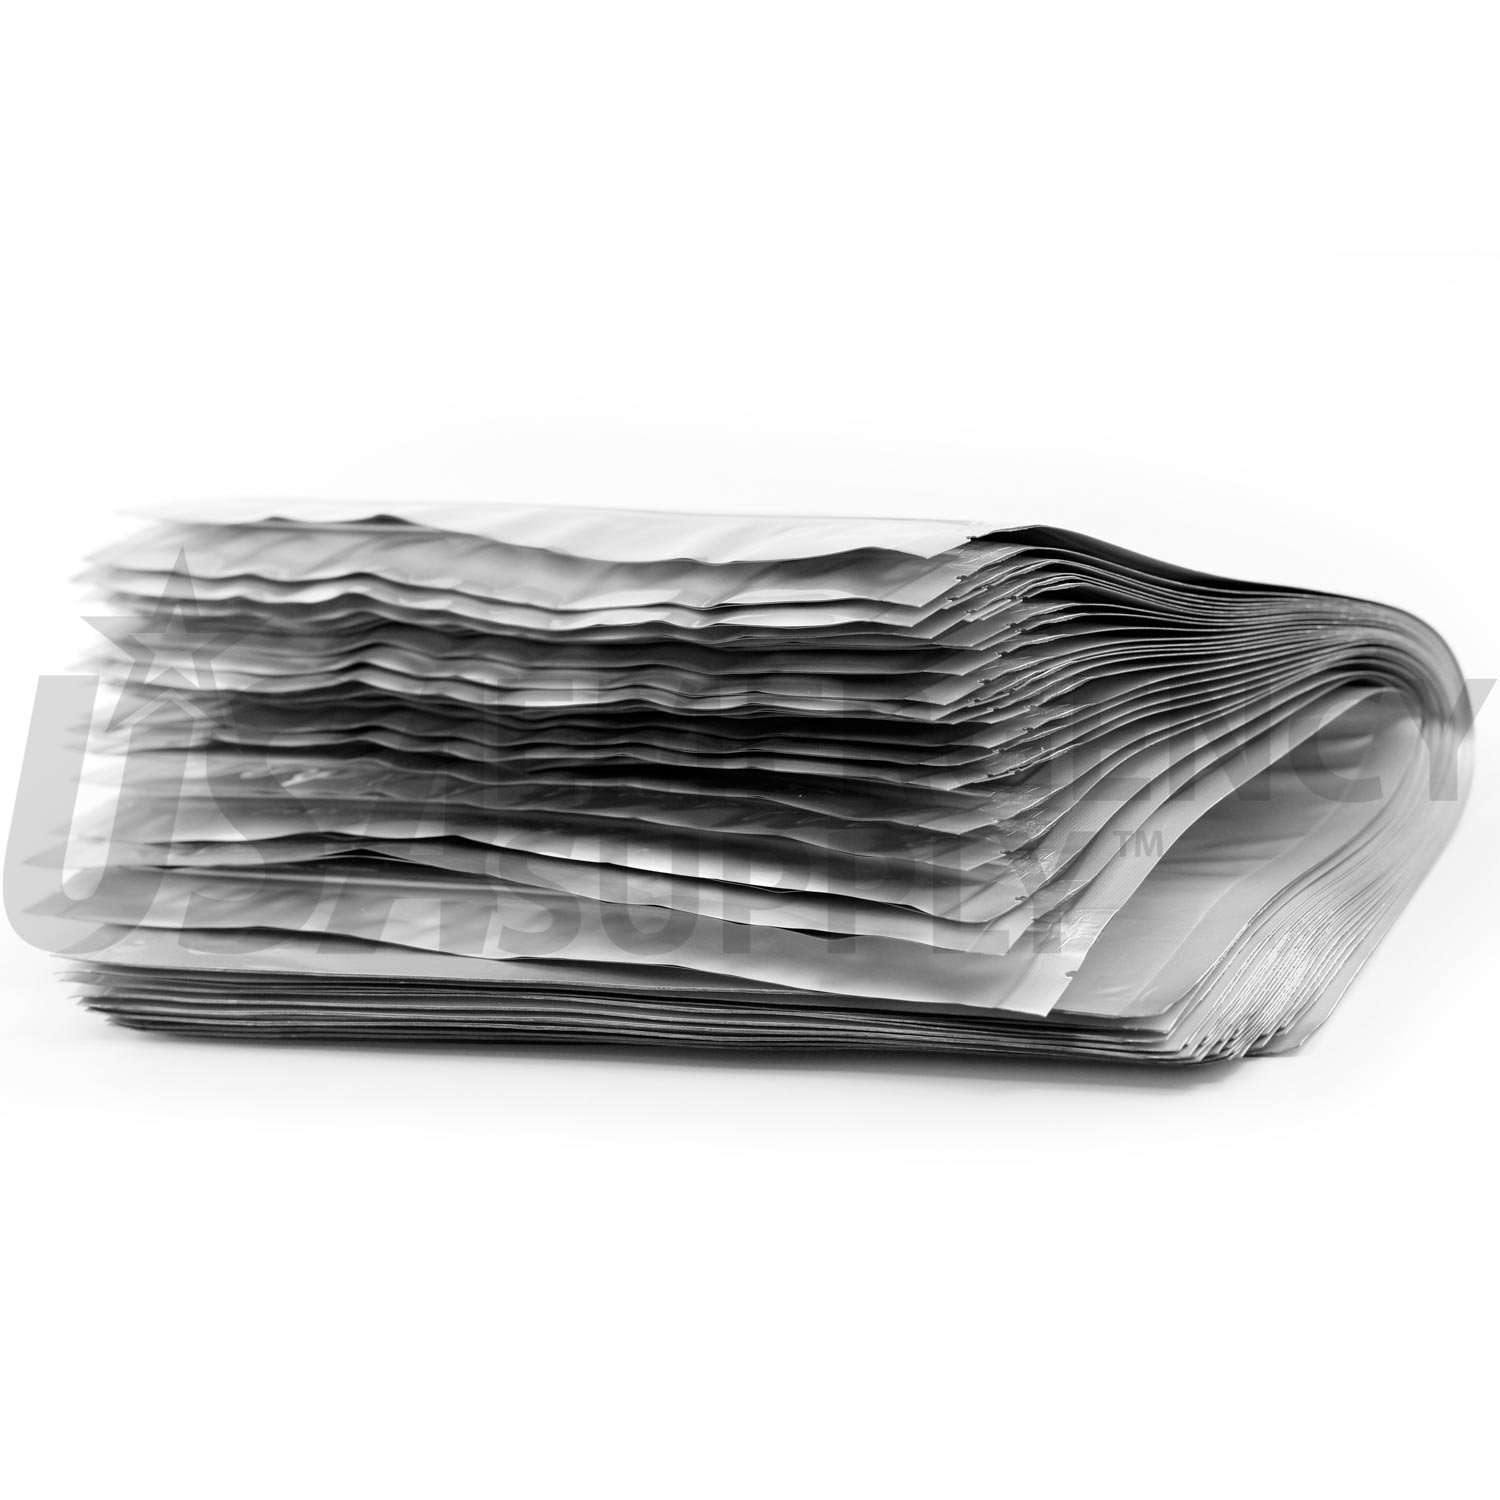 Half Gallon Mylar Bag With Ziplock | USA Emergency Supply